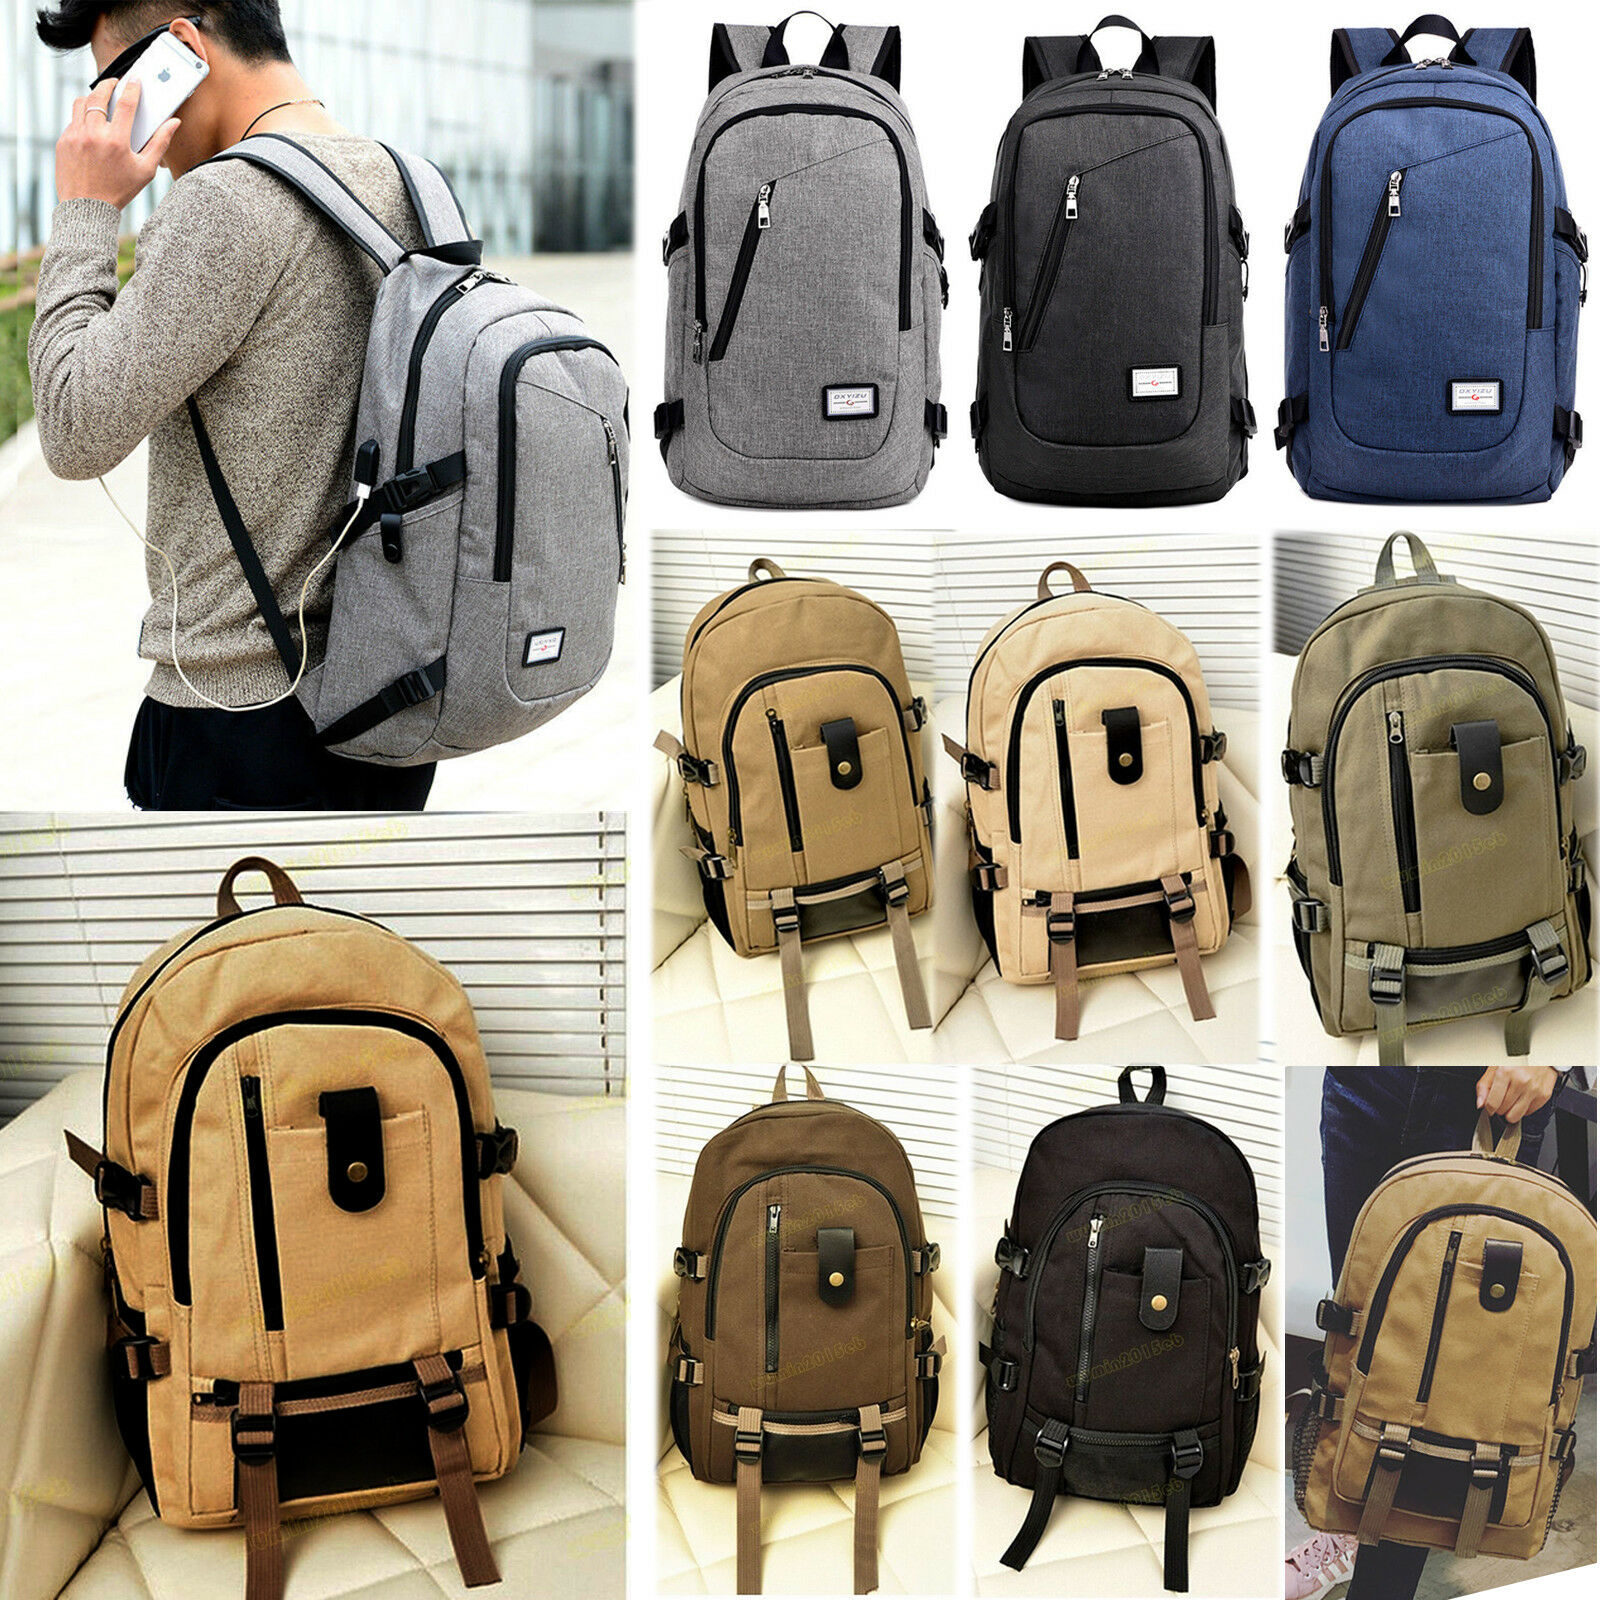 Men Women Canvas Retro Schoolbag Rucksack Laptop Travel Hiking Camping... - s l1600